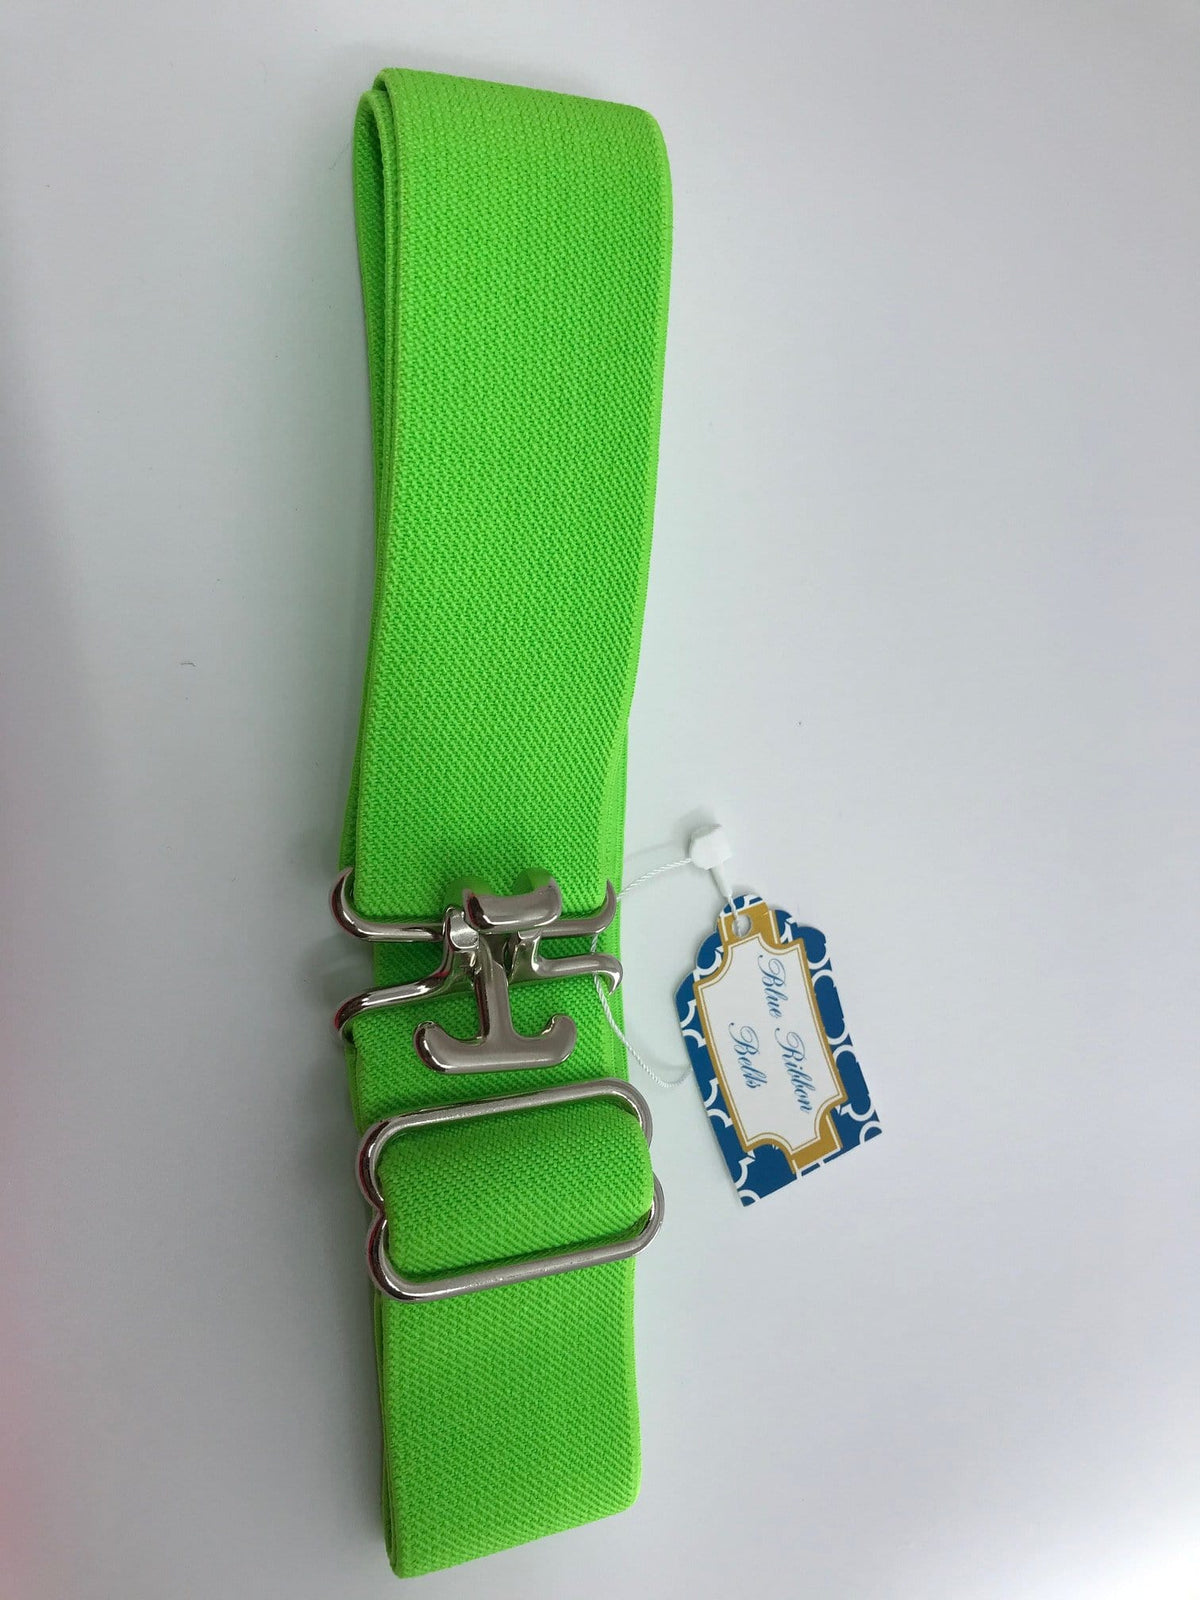 "Blue Ribbon Belts Belt Bright Green Blue Ribbon Belts 1.5"" equestrian team apparel online tack store mobile tack store custom farm apparel custom show stable clothing equestrian lifestyle horse show clothing riding clothes horses equestrian tack store"